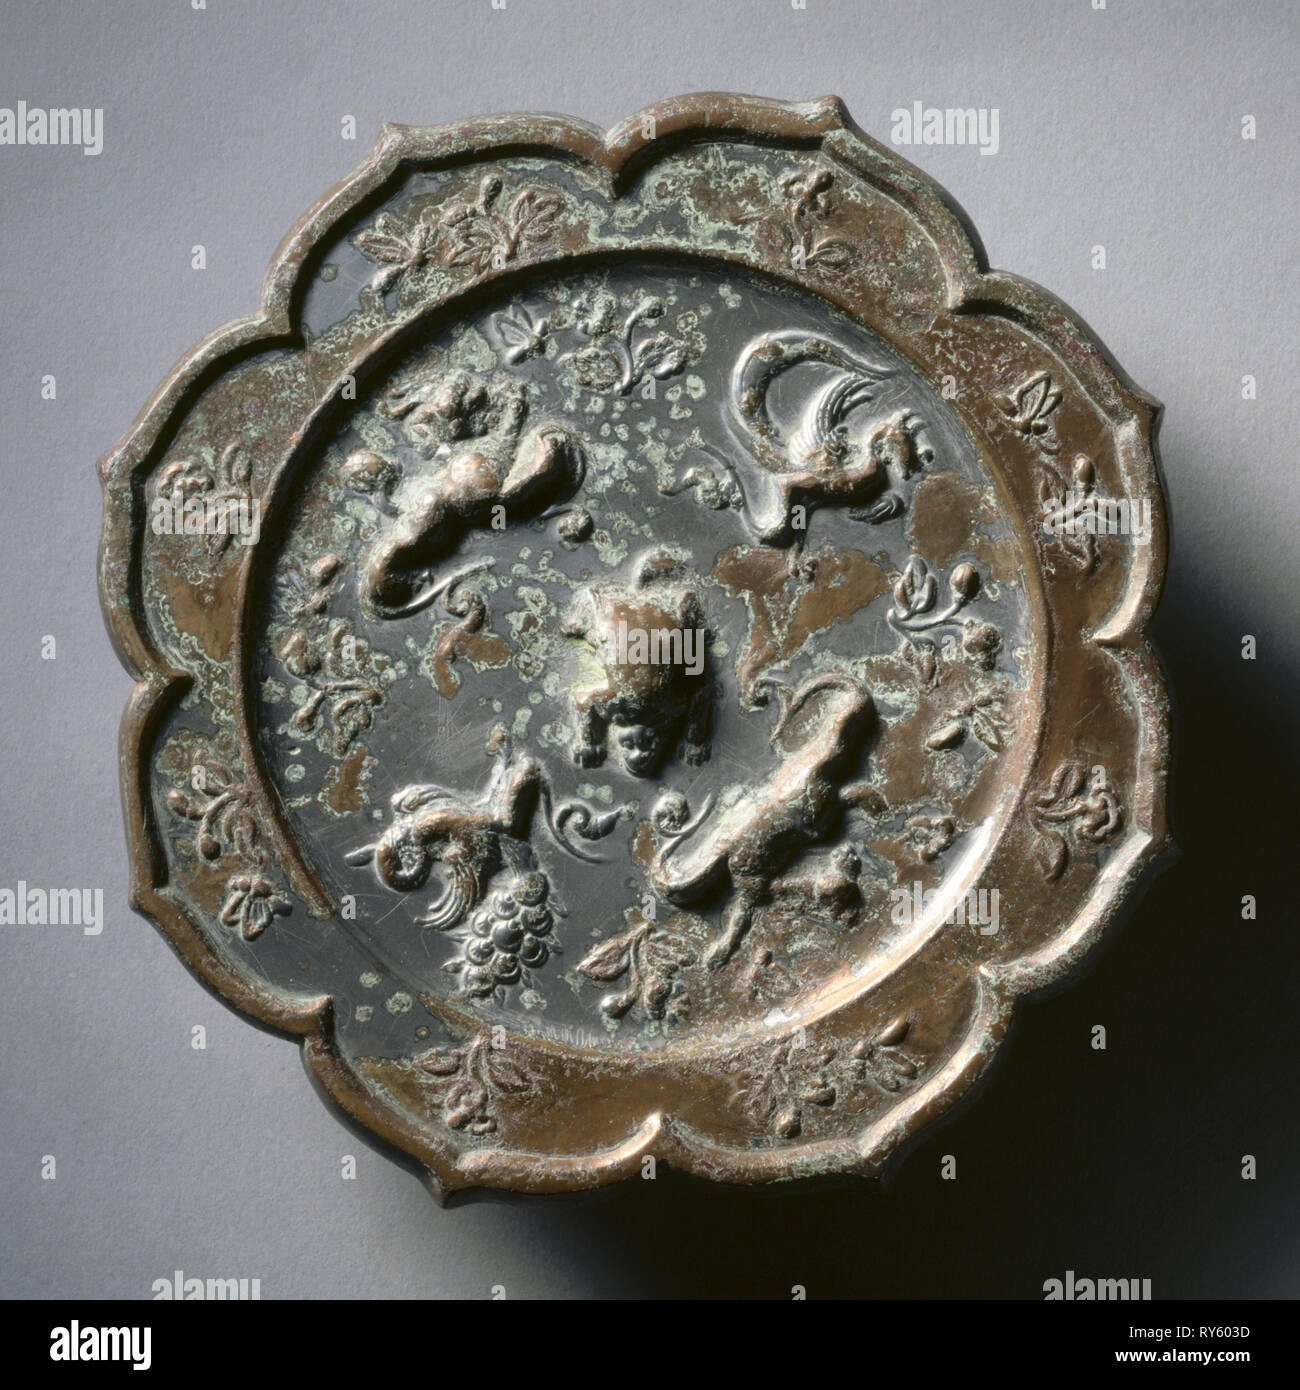 Octafoil Mirror with Crouched Animals, early 7th Century - early 10th Century Stock Photo